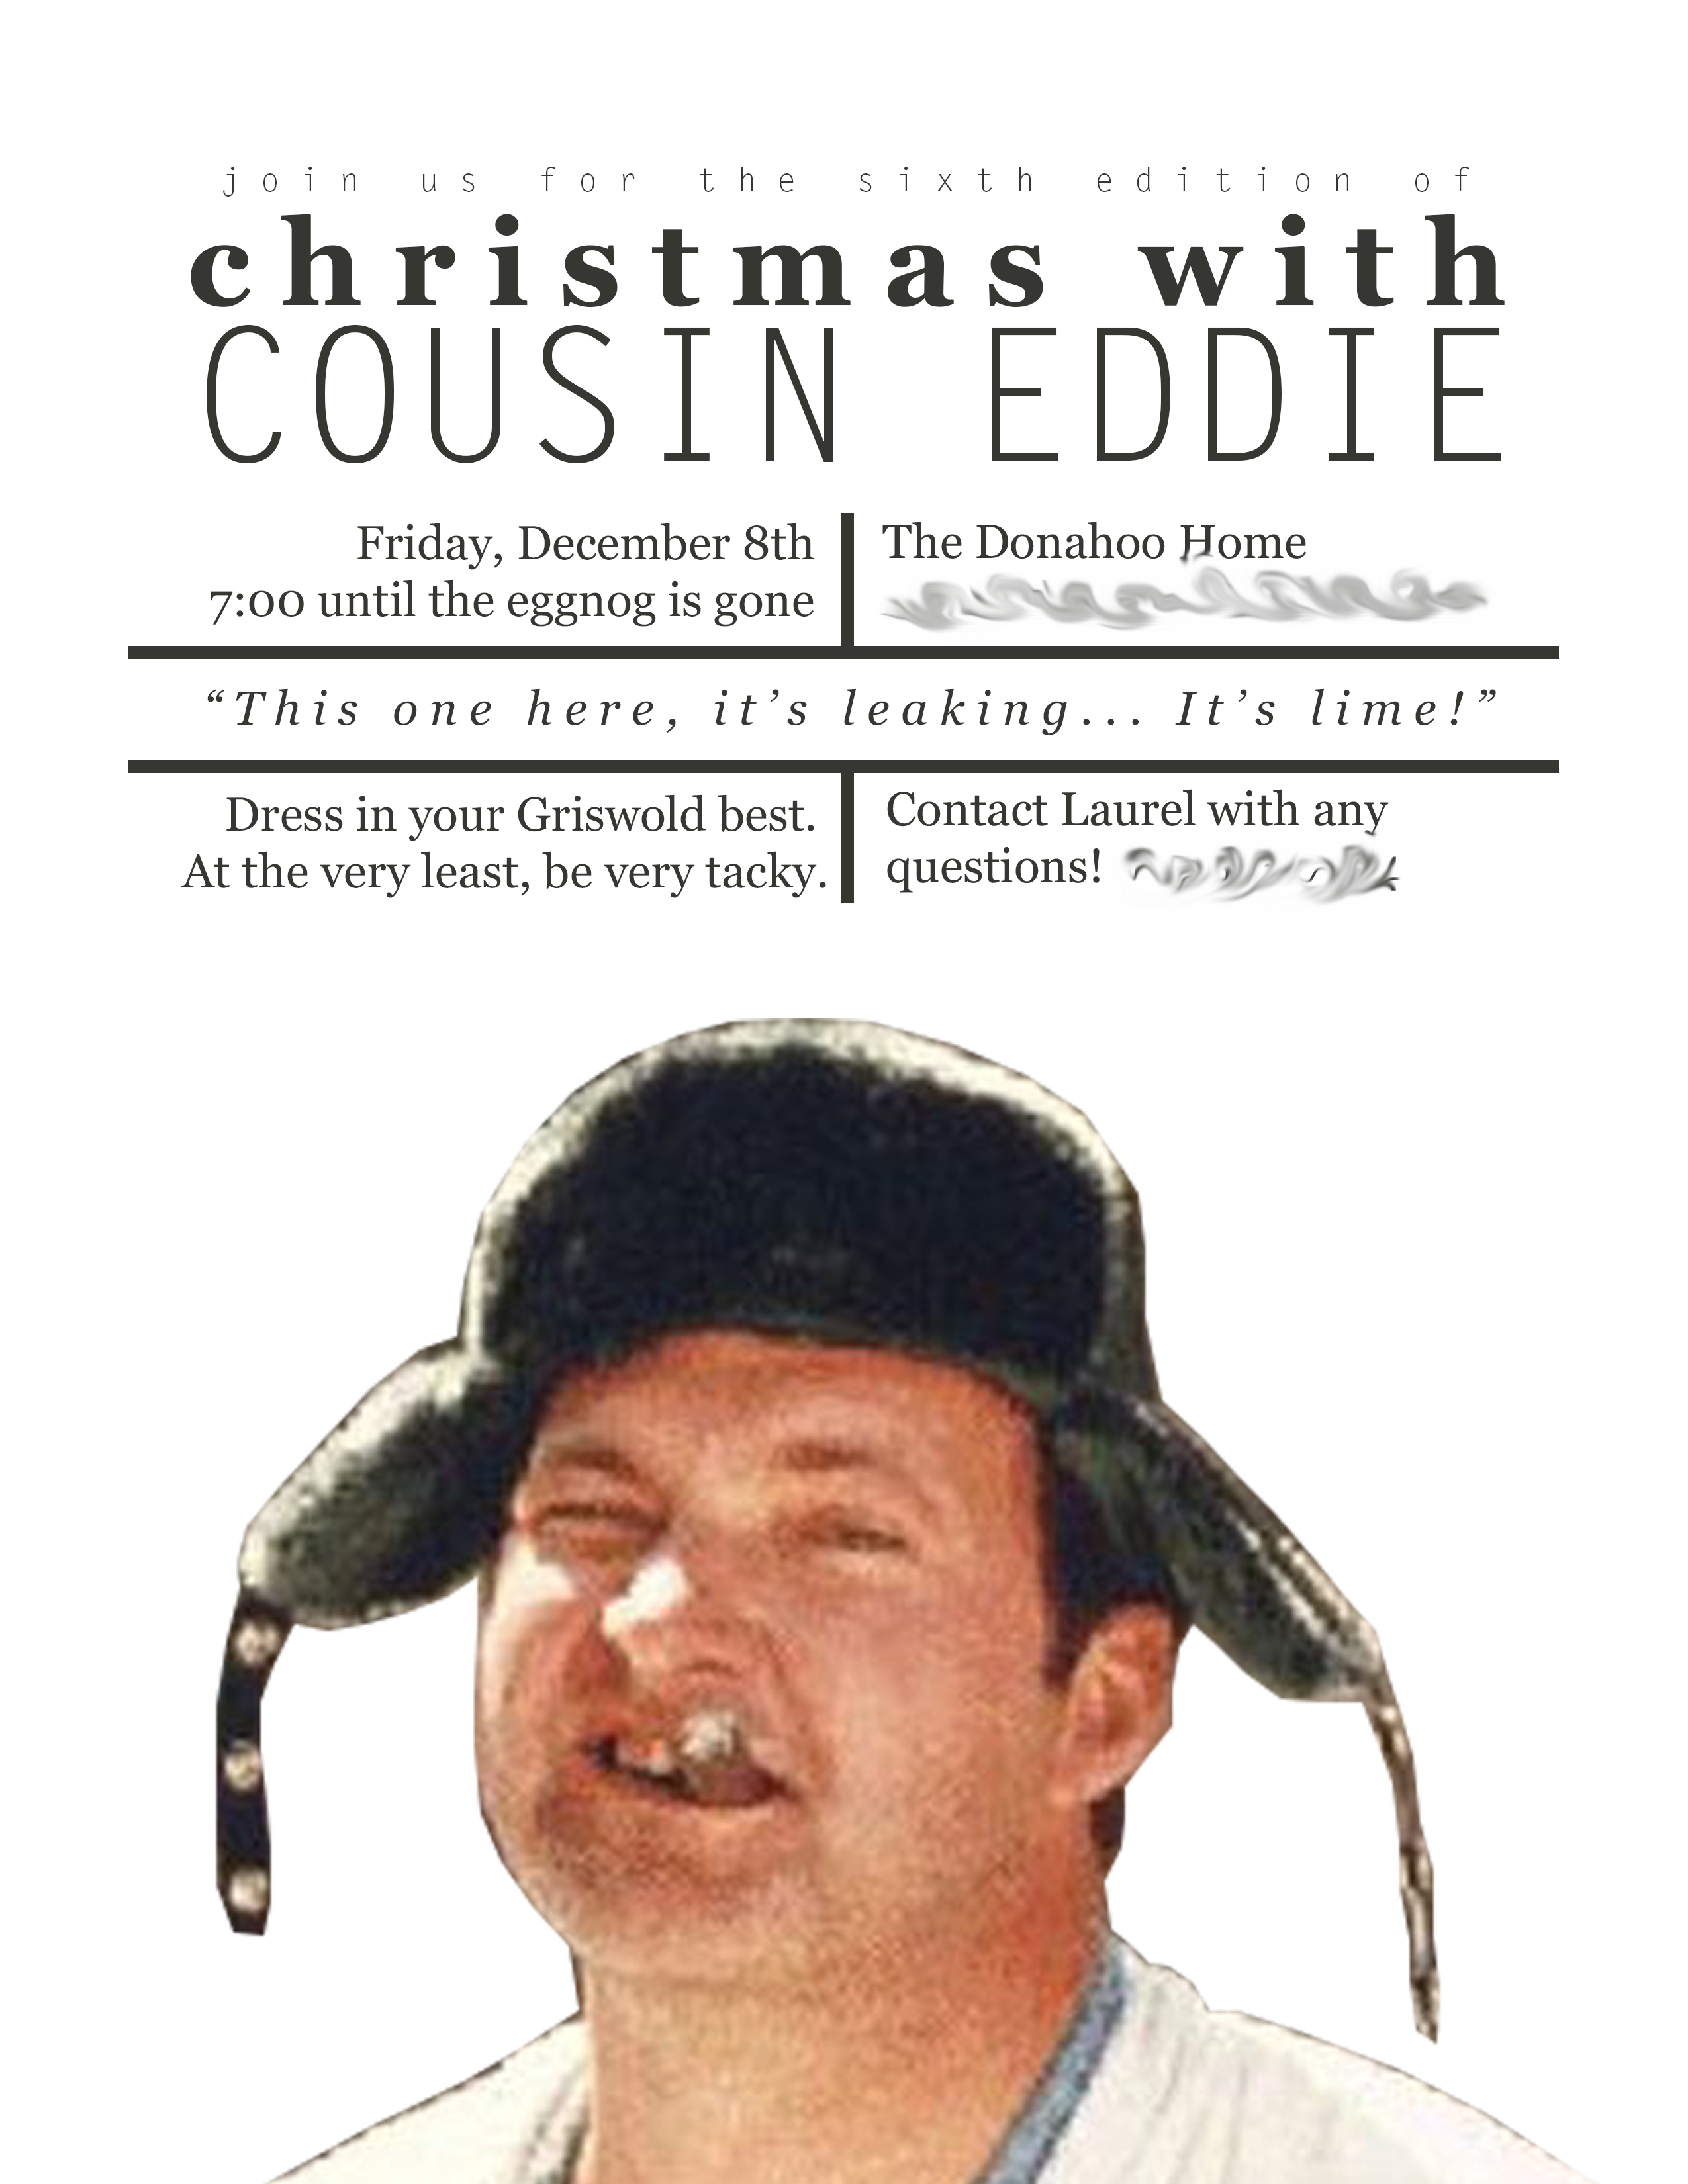 Christmas With Cousin Eddie 6.0 // www.thehiveblog.com